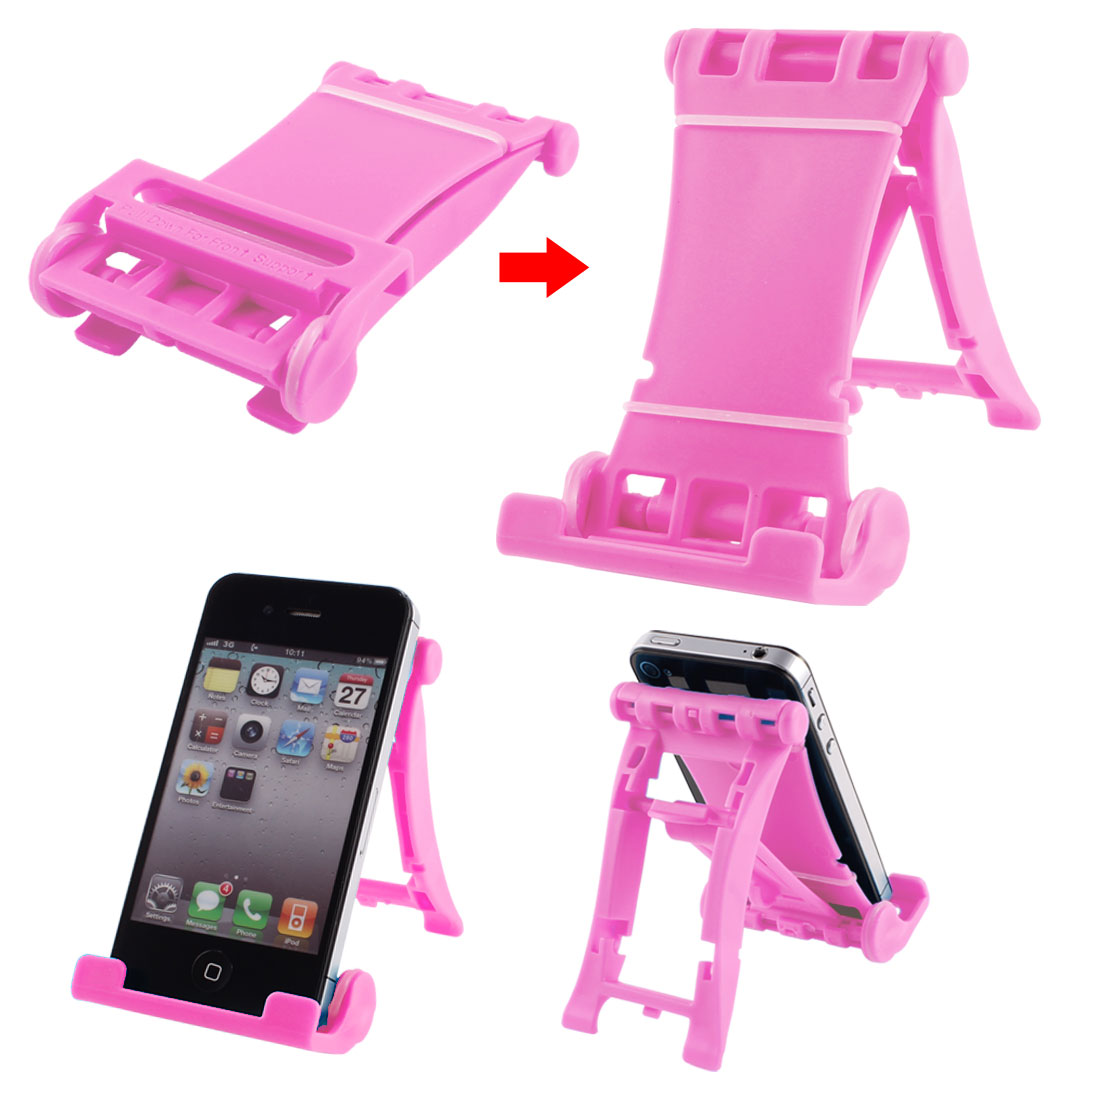 Pink Plastic Folded Universal Portable Multi Stand Holder for E-Reader Tablets